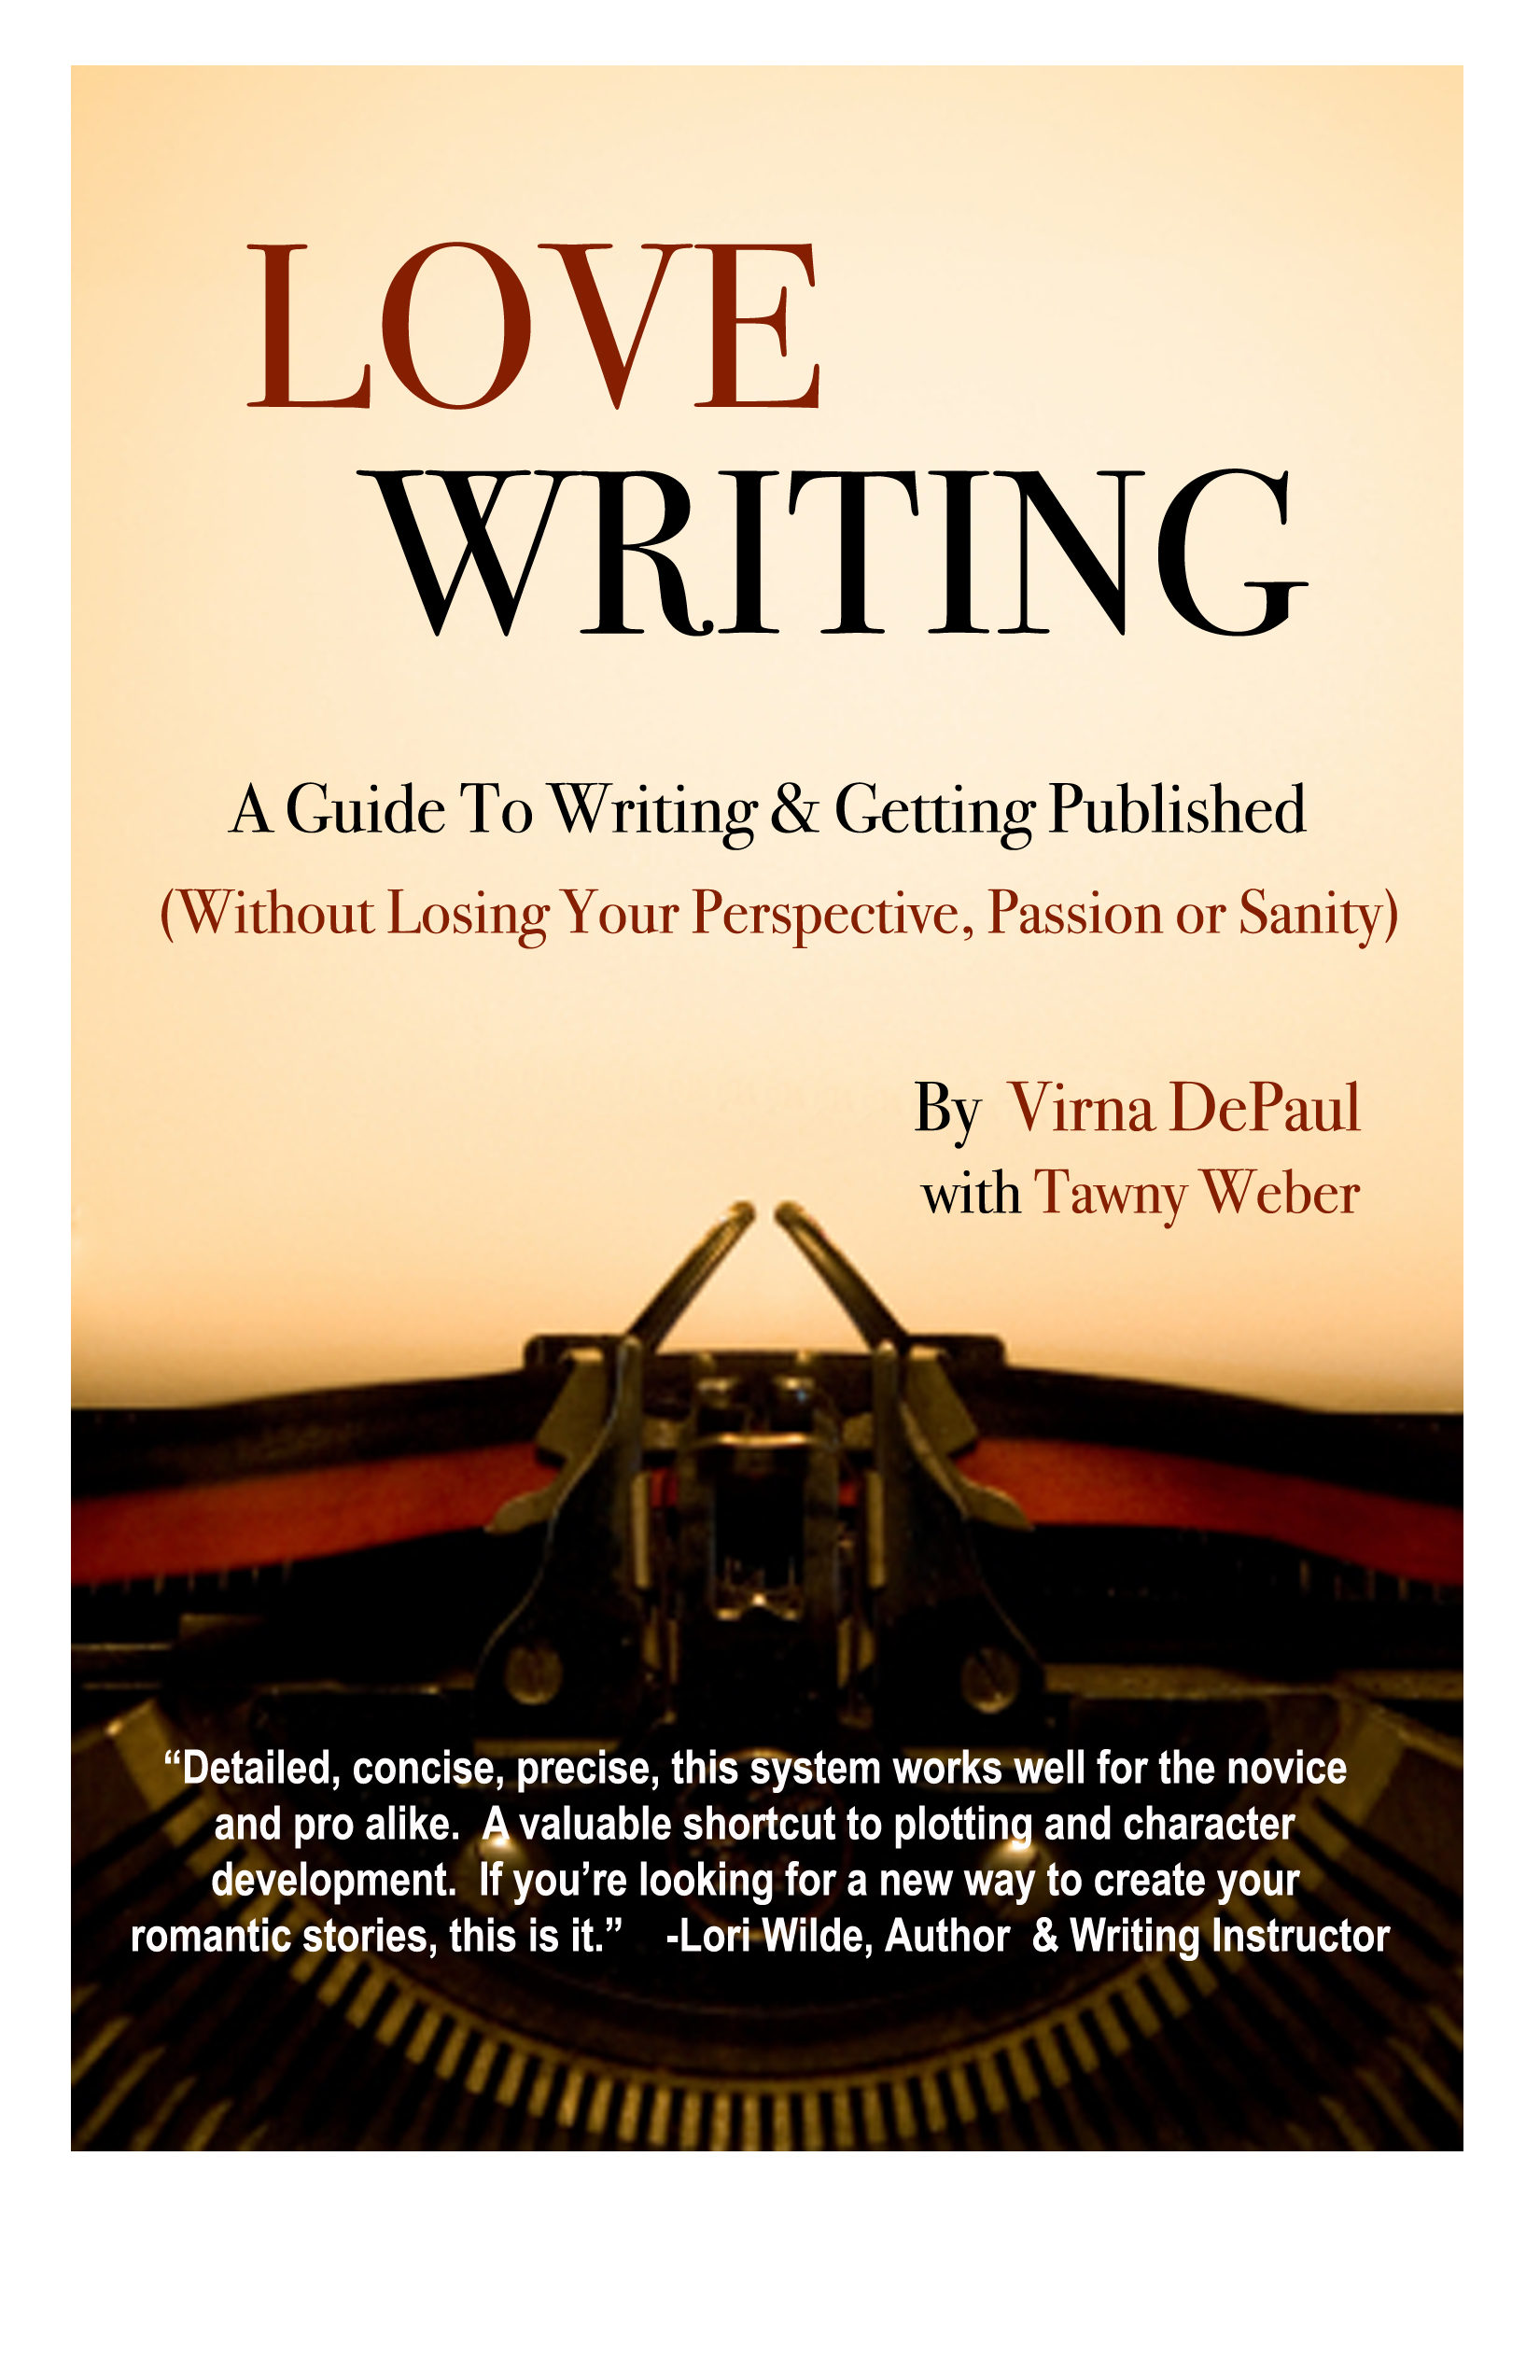 Love Writing: A Guide To Writing & Getting Your Romance Novel Published, an  Ebook by Virna DePaul